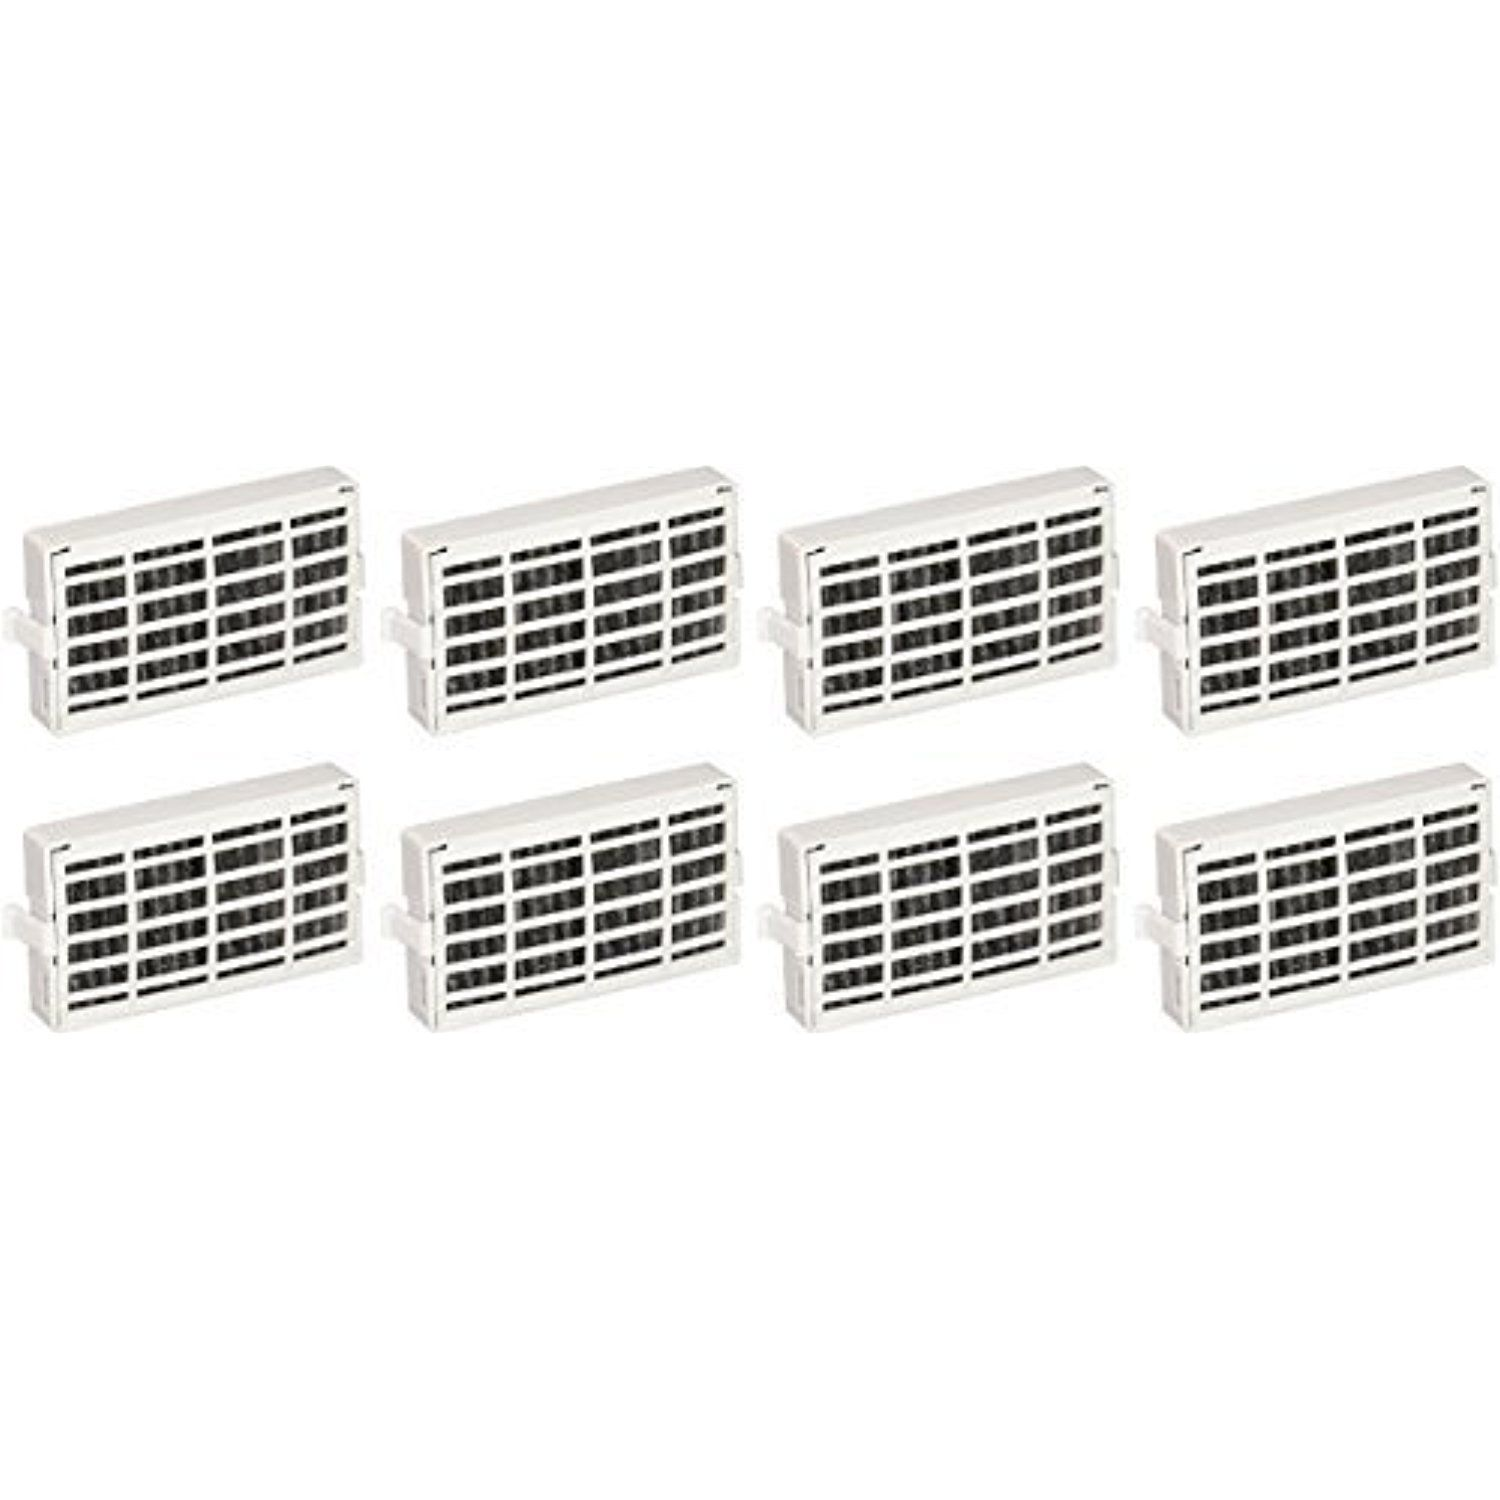 Whirlpool Refrigerator Air Filter Replacement for